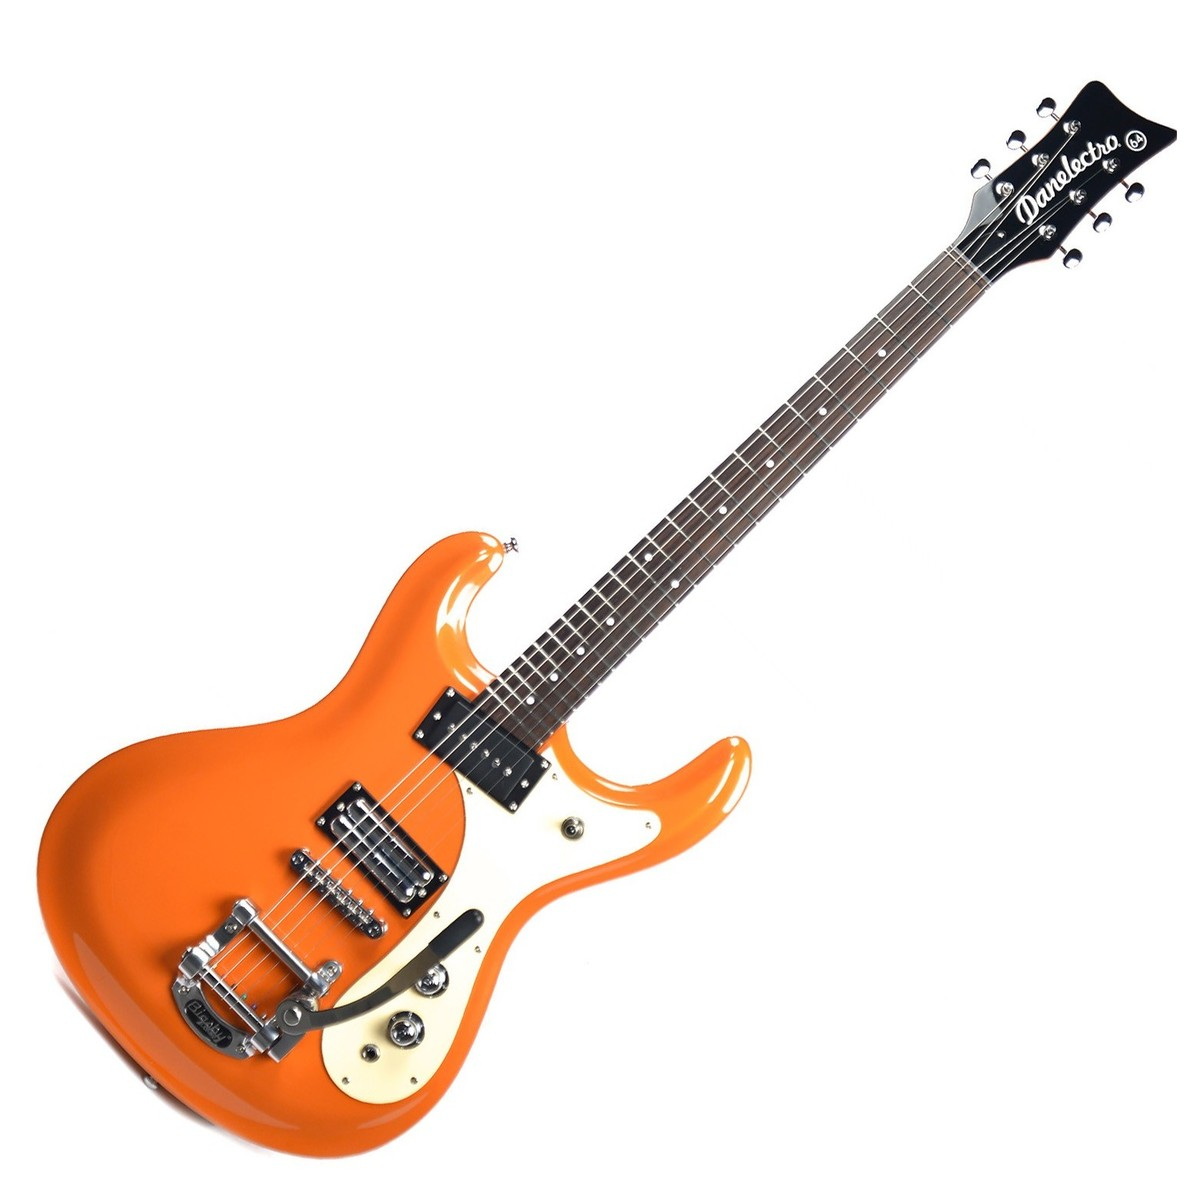 danelectro 64 electric guitar metallic orange at gear4music. Black Bedroom Furniture Sets. Home Design Ideas